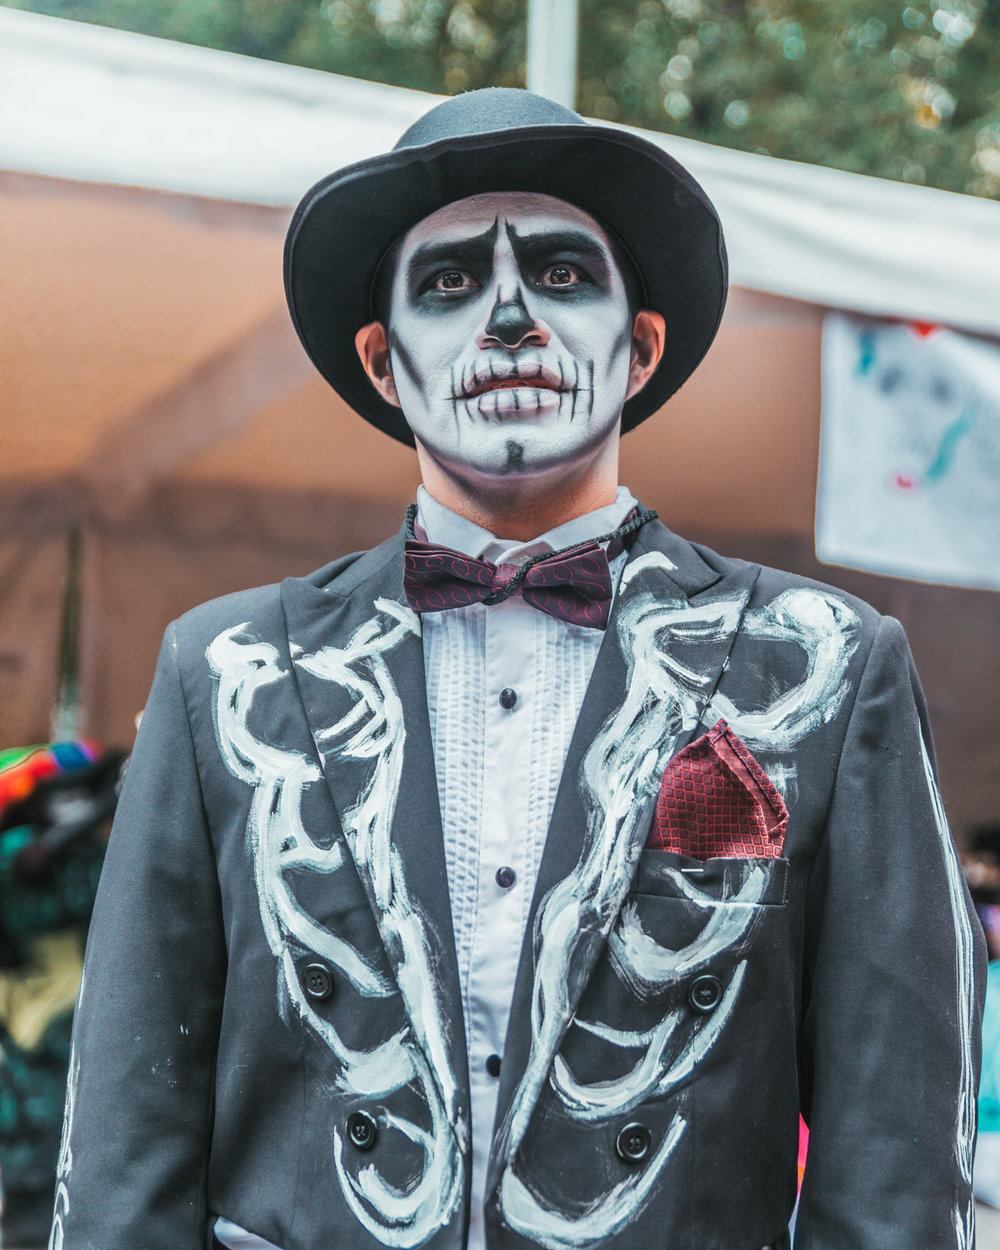 Mexico City Day of the Dead Parade // What to Do In Mexico City for Day of the Dead // www.readysetjetset.net #readysetjetset #mexicocity #dayofthedead #traveltips #blogtips